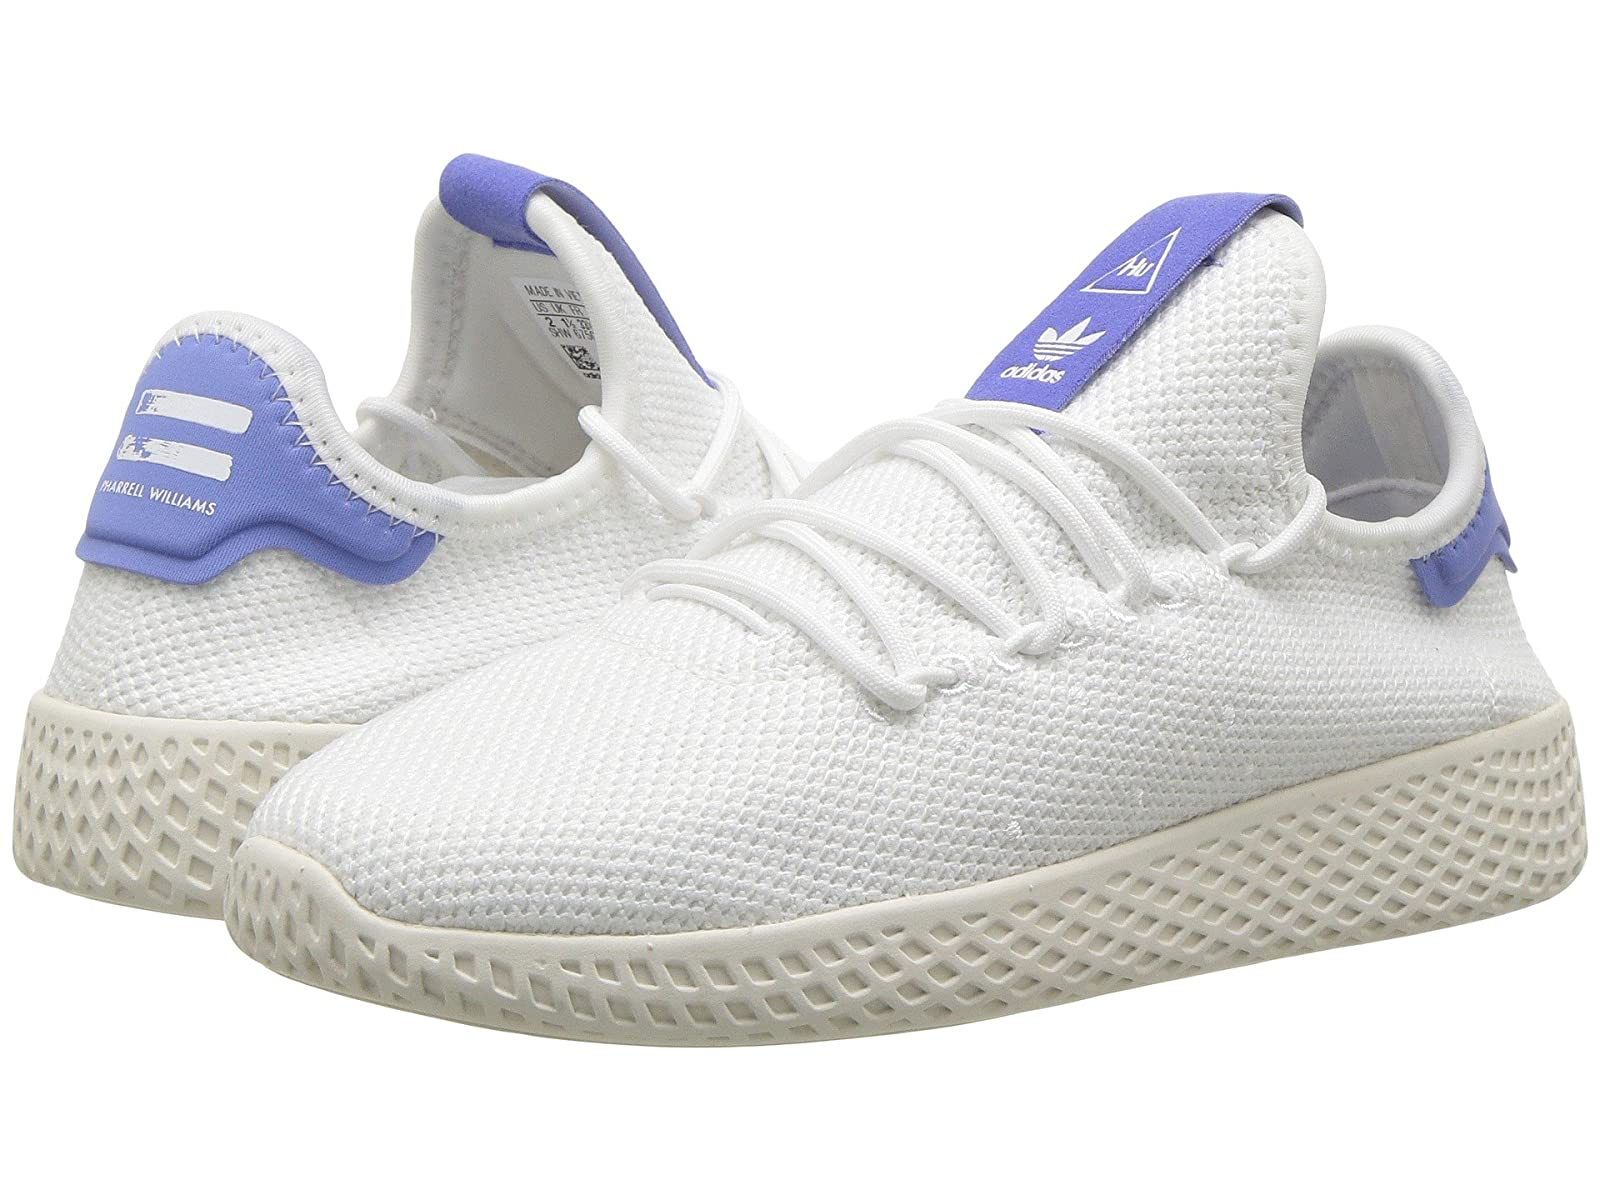 adidas Originals Kids PW Tennis HU C (Little Kid)Atmospheric grades have affordable shoes